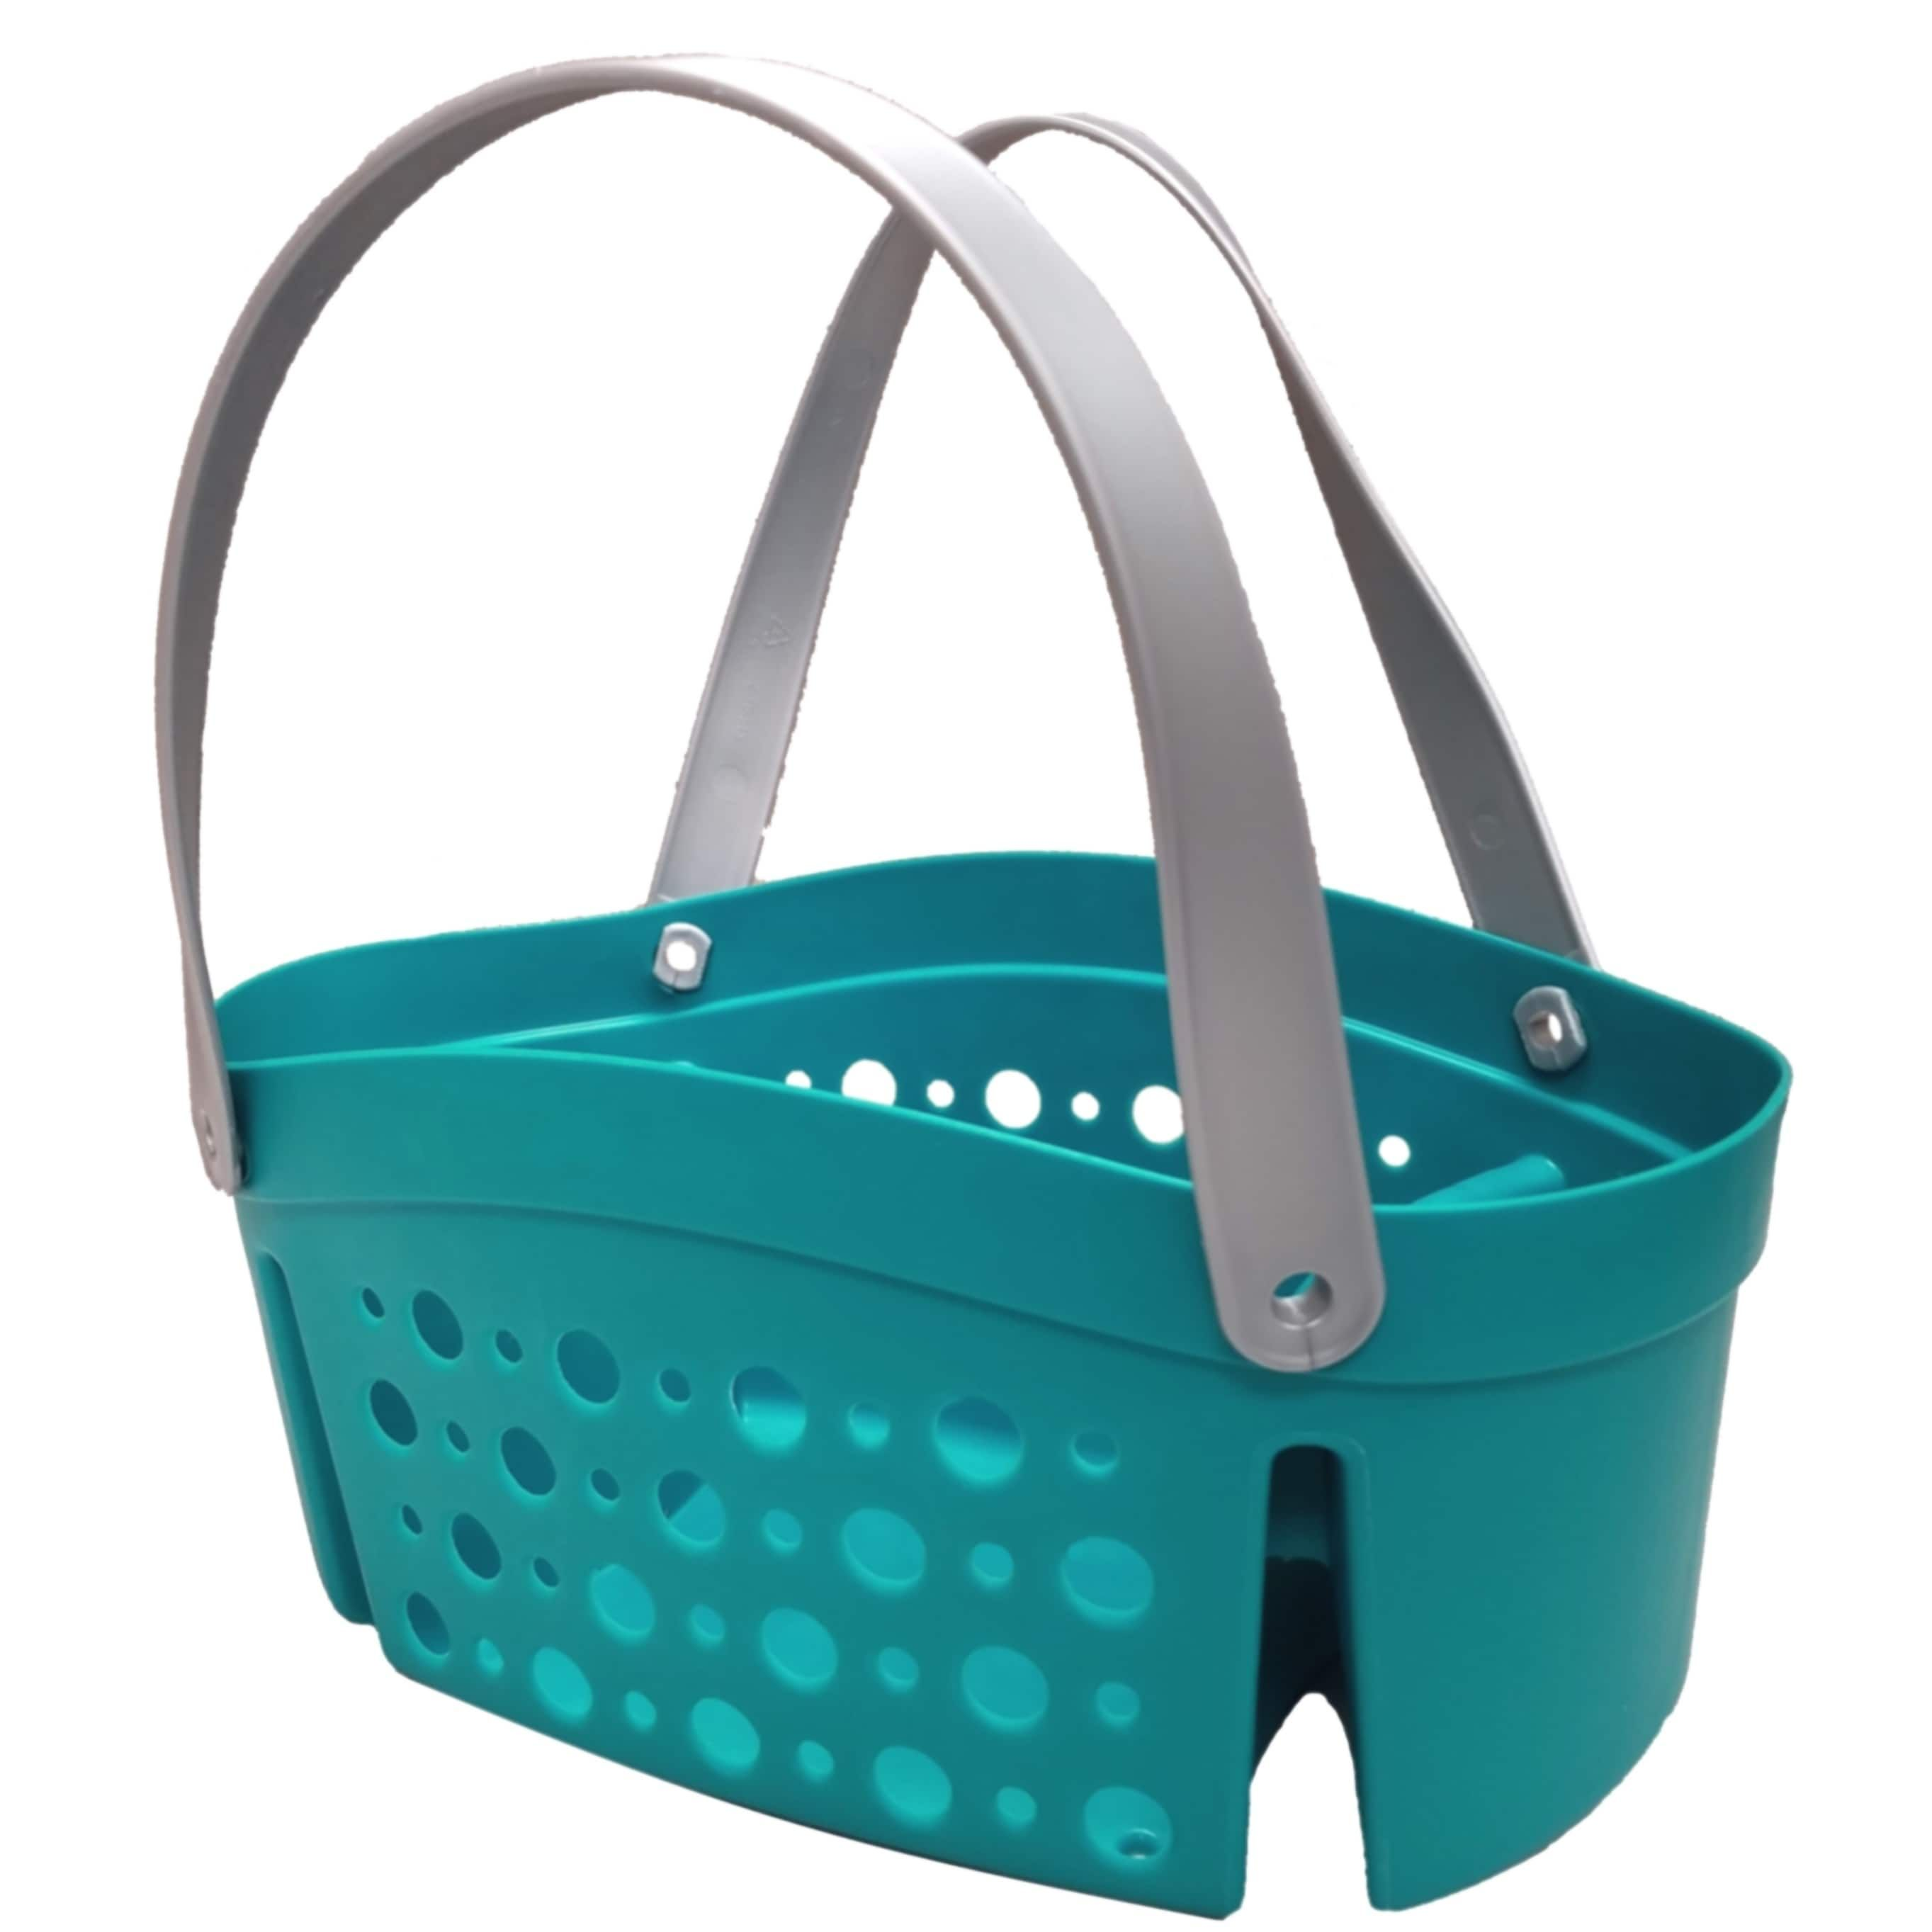 Flex Shower Caddy / Tote - Teal (Blue) | Products